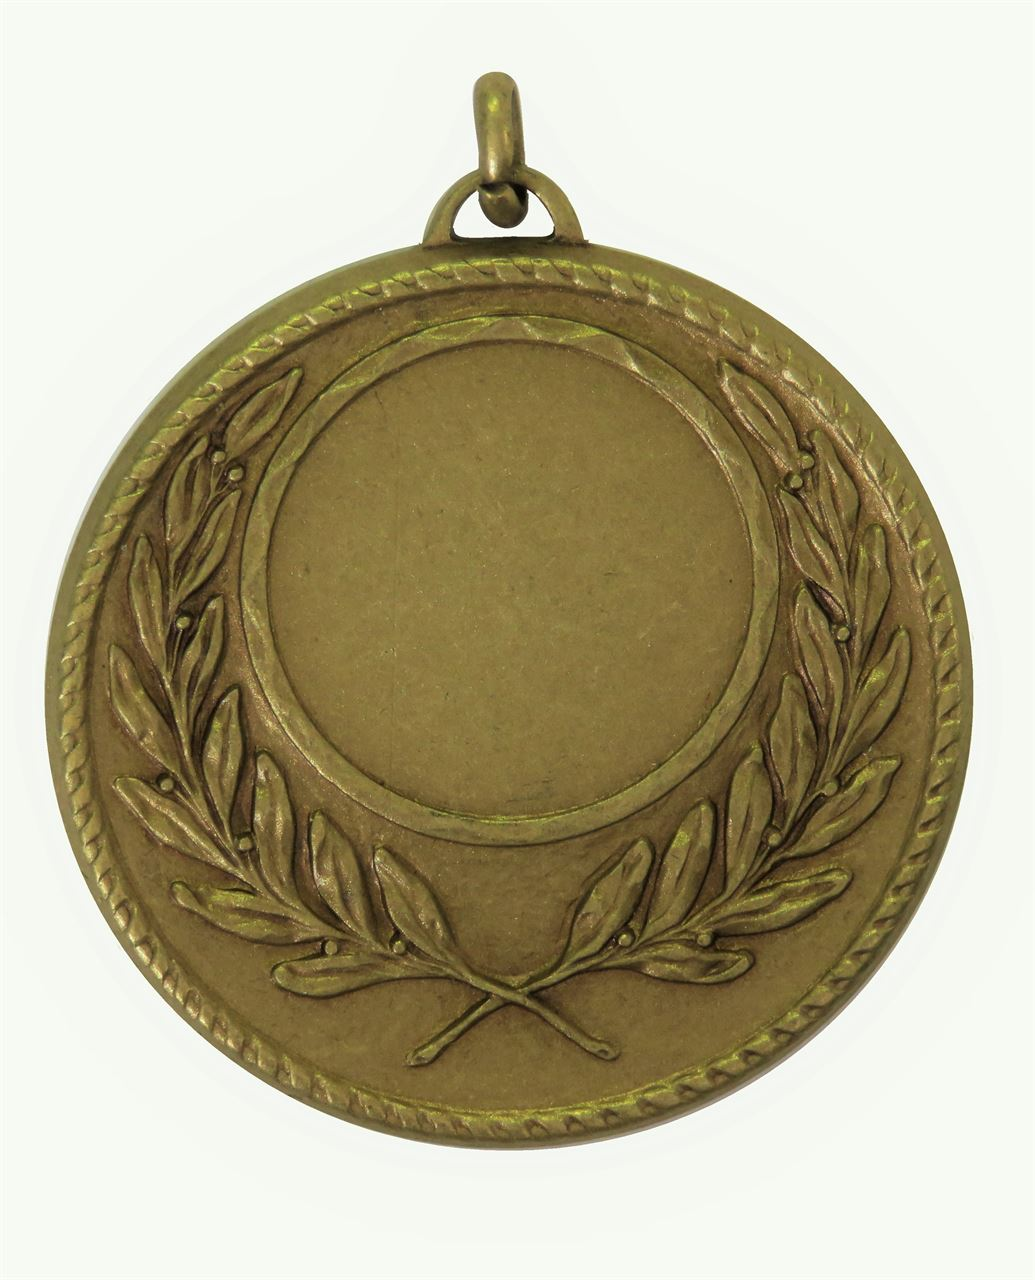 Bronze Quality Wreath Medal (size: 50mm) - 5605E